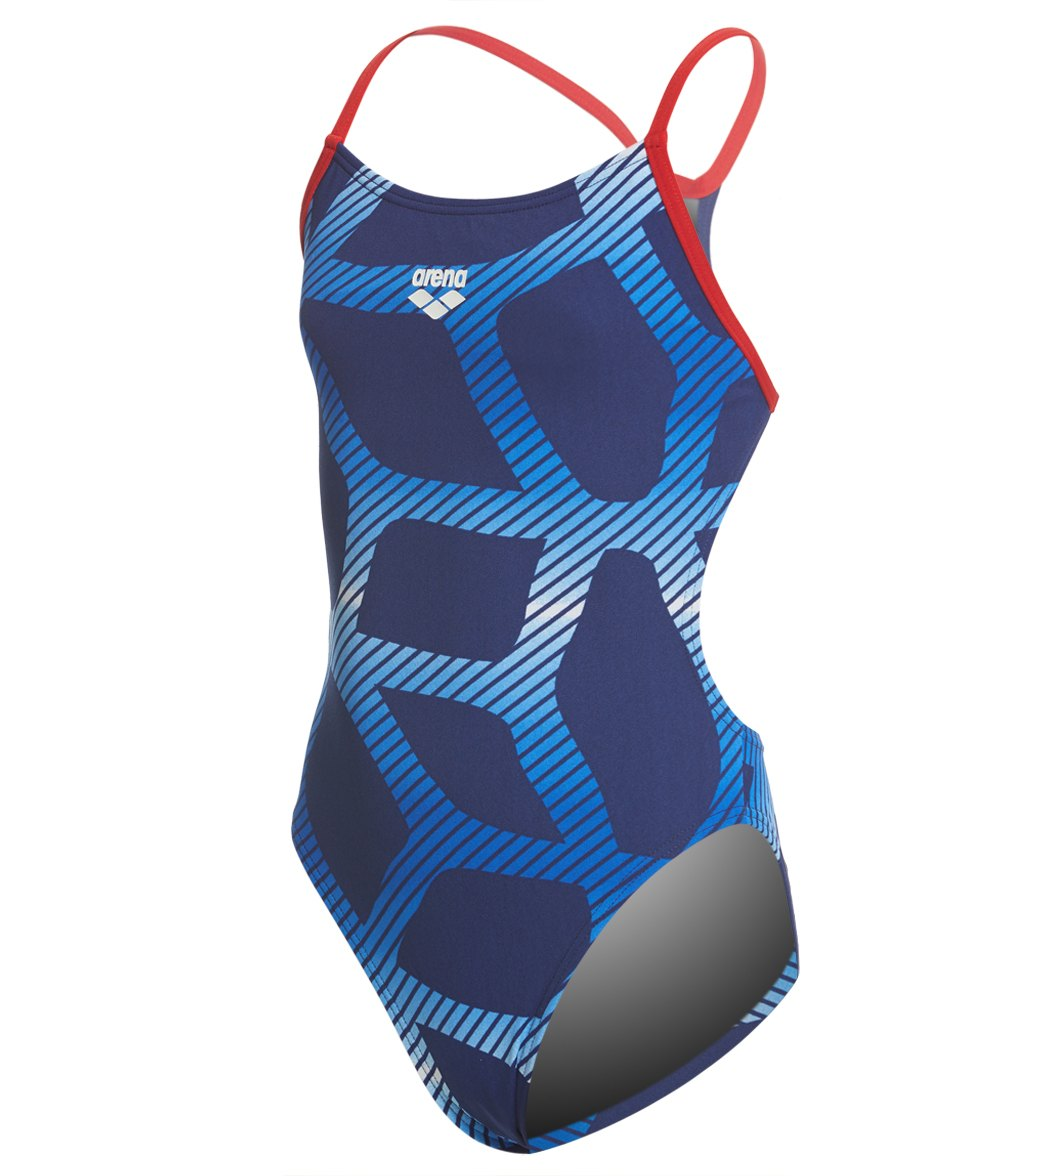 891418bafe26c Arena Girls' Spider MaxLife Booster Racer Back One Piece Swimsuit at  SwimOutlet.com - Free Shipping